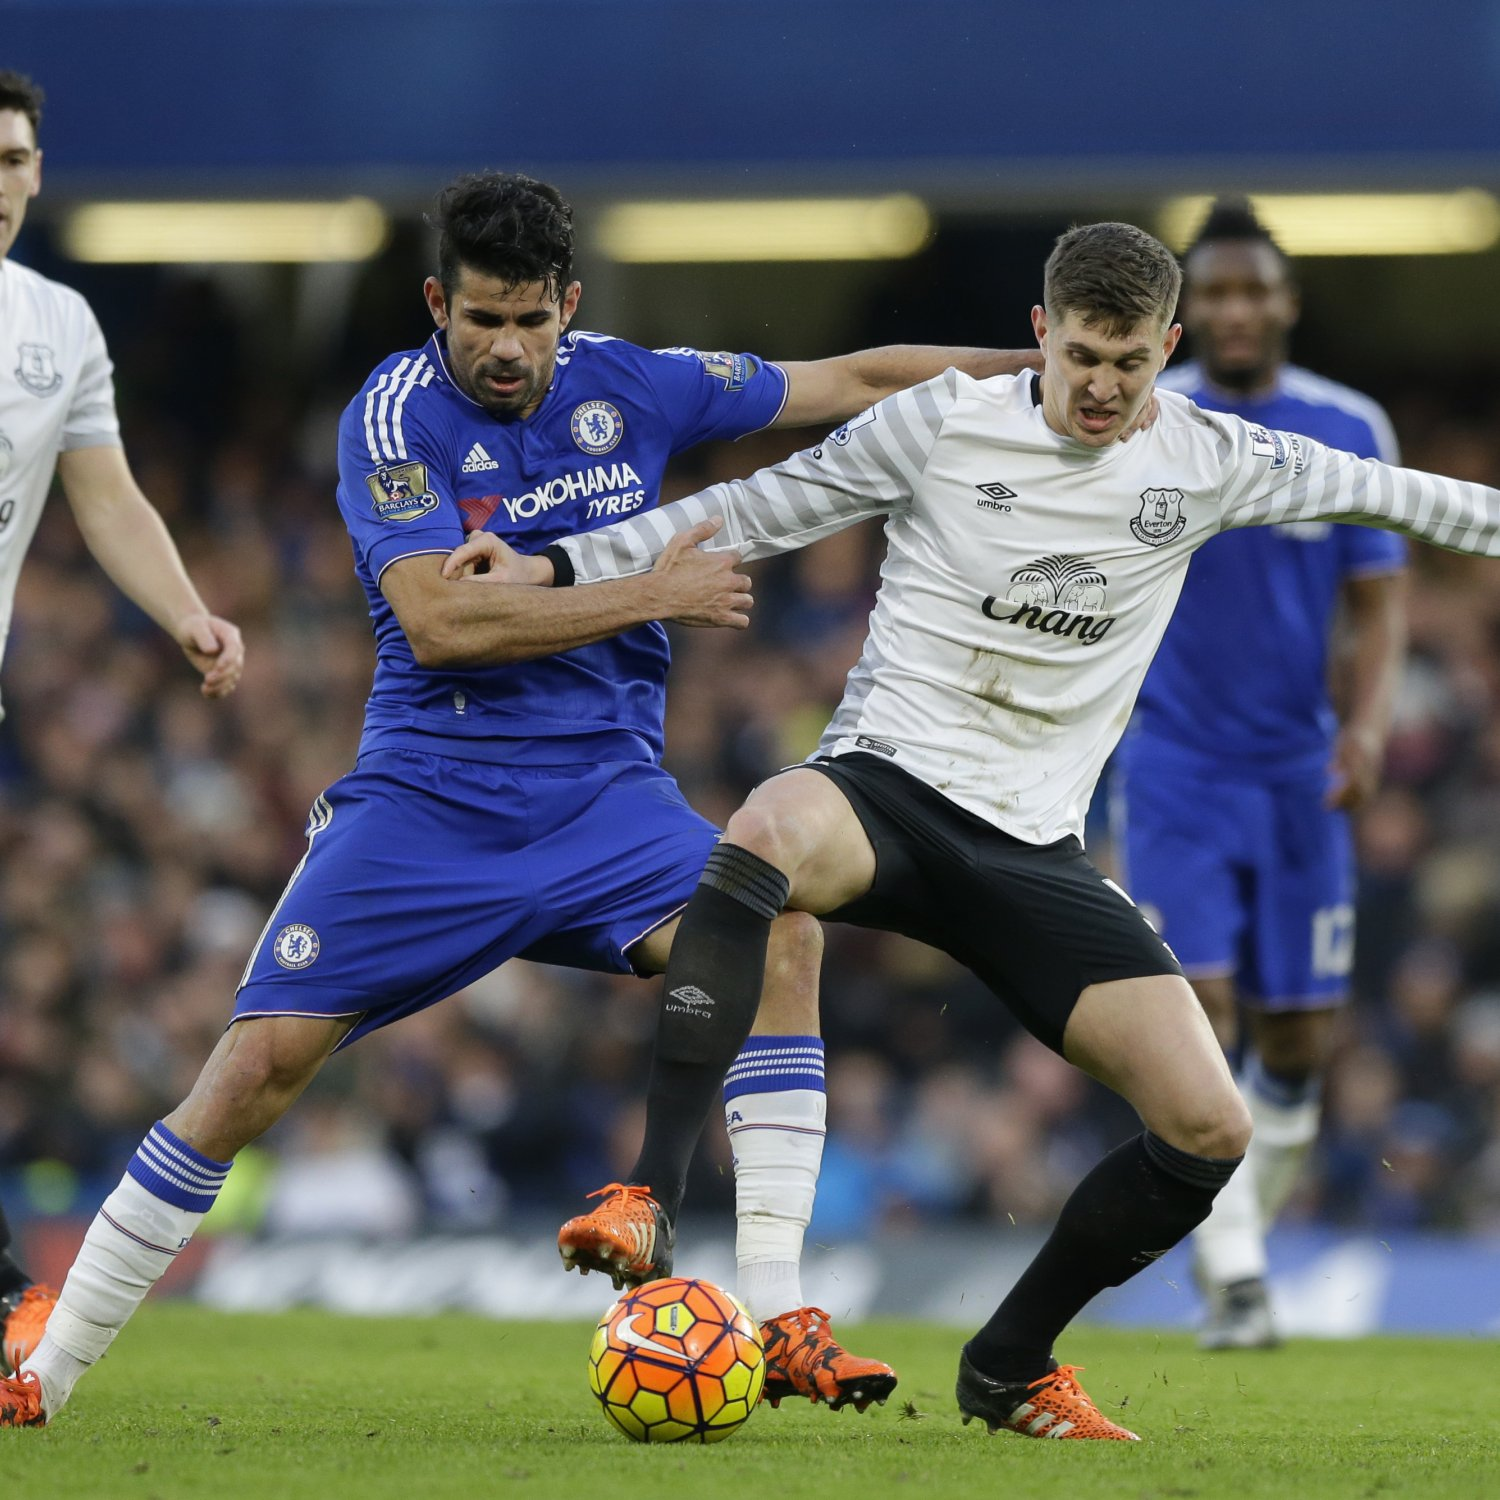 Chelsea Vs Tottenham Score Reaction From 2016 Premier: Chelsea Vs. Everton: Score, Reaction From 2016 Premier